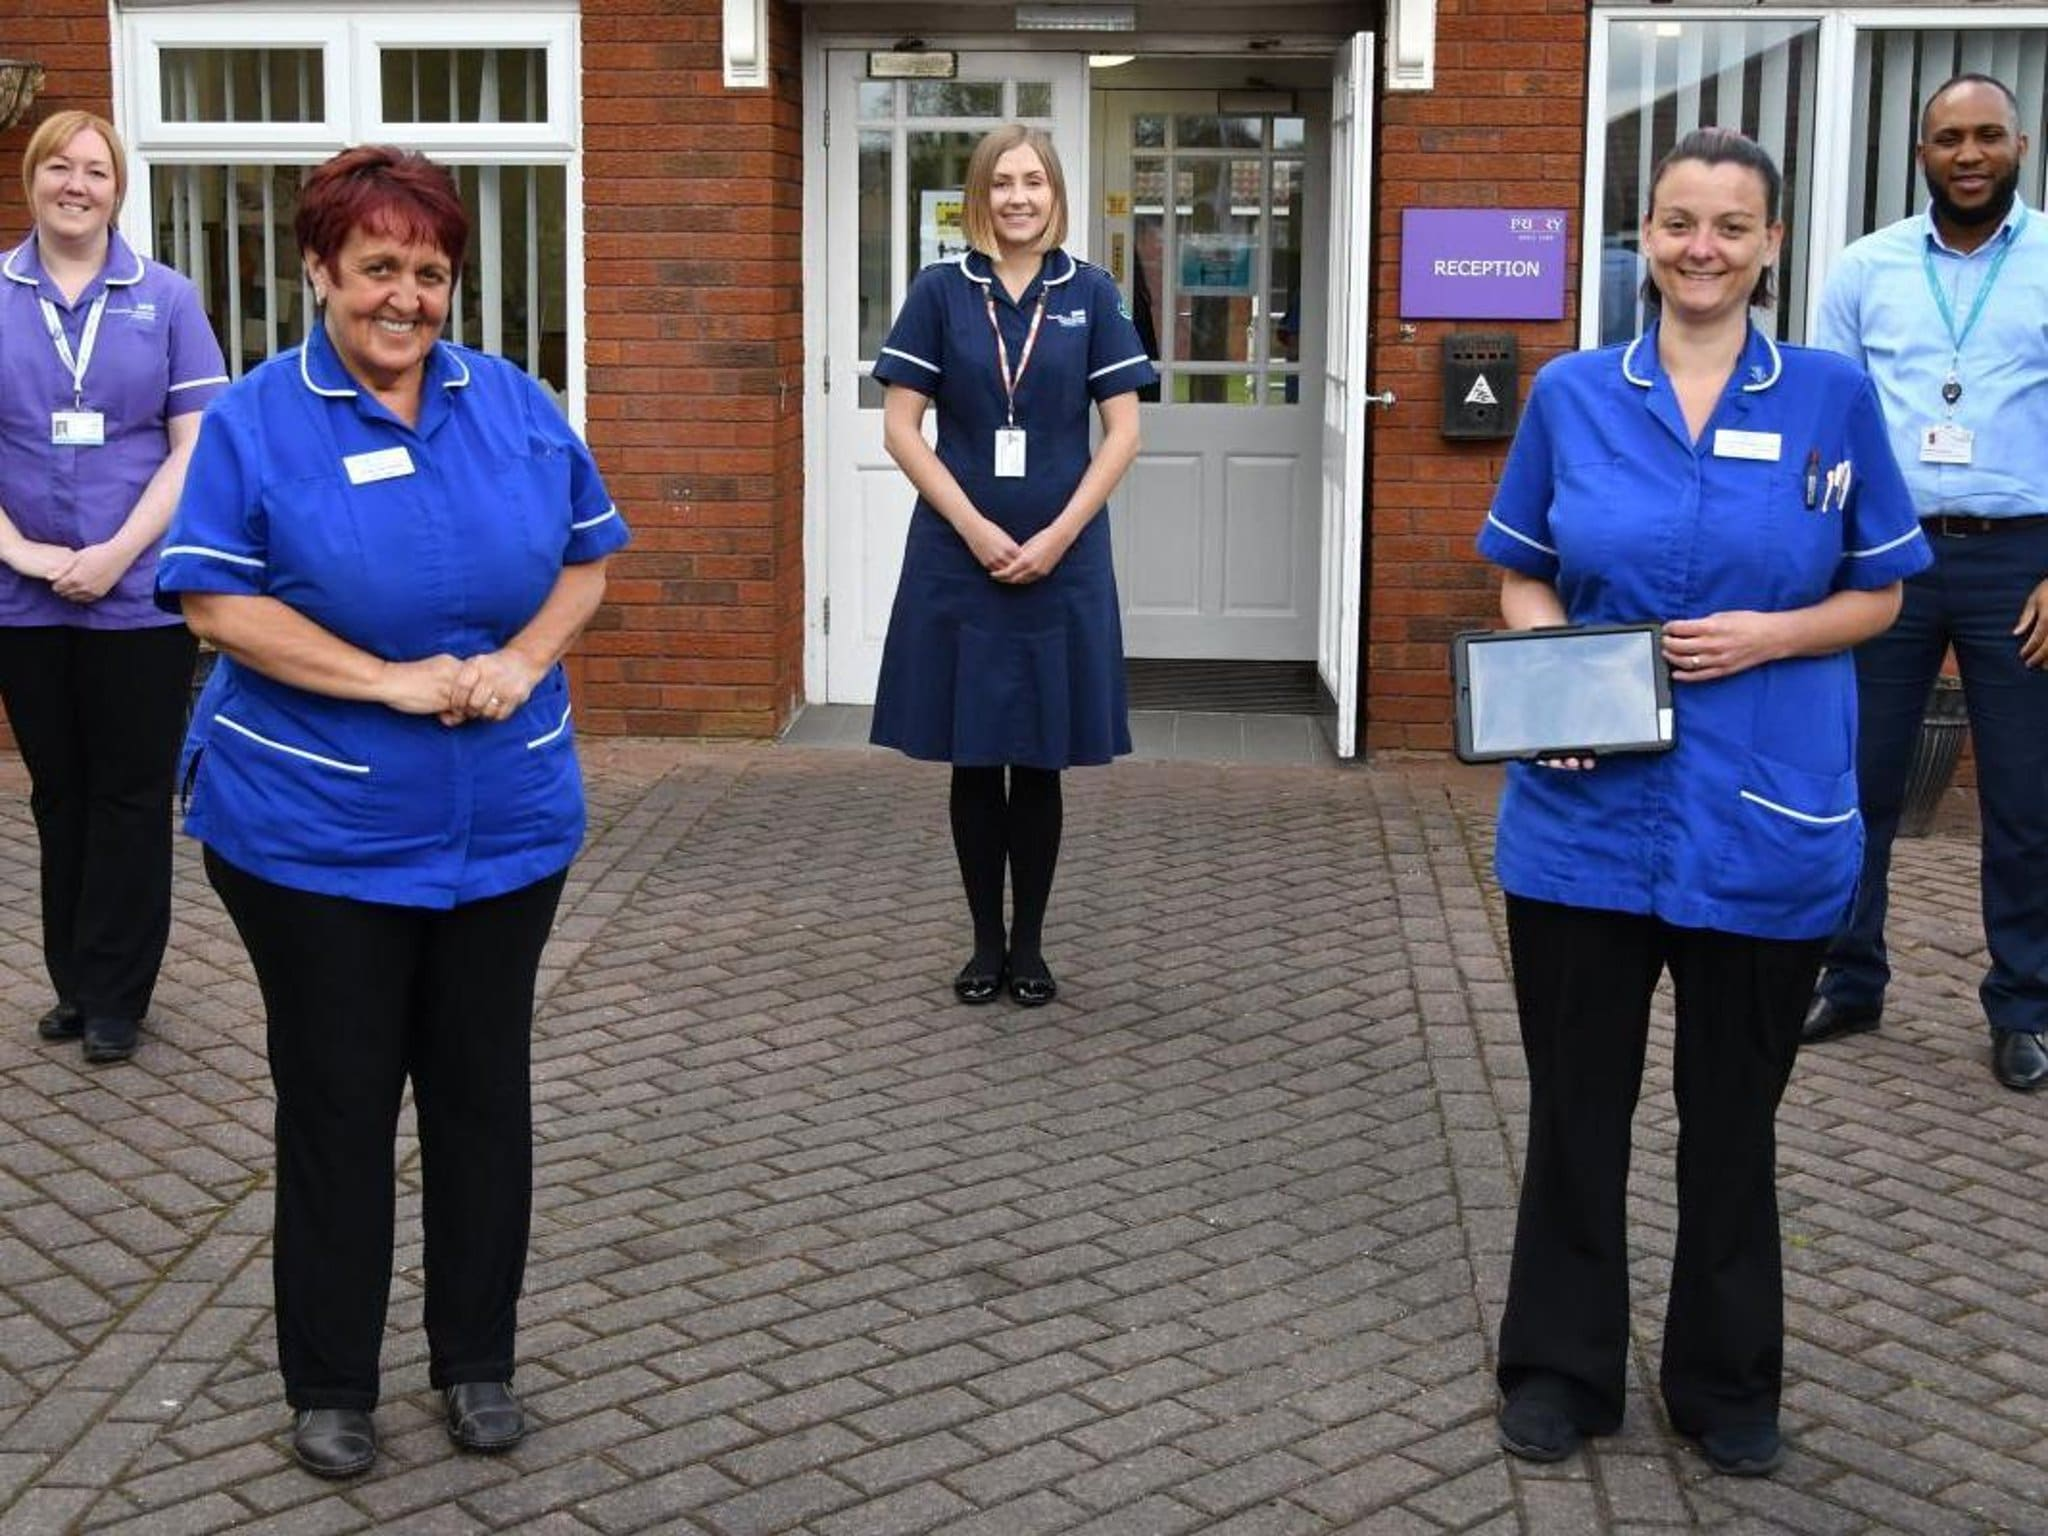 'Instant access' to healthcare for residents in more than 100 Lancashire care homes